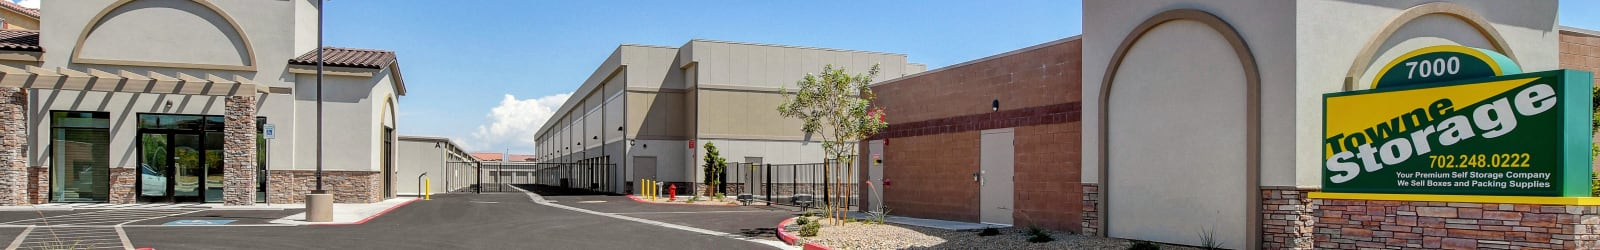 Hours and directions to Towne Storage - Cactus in Las Vegas, Nevada